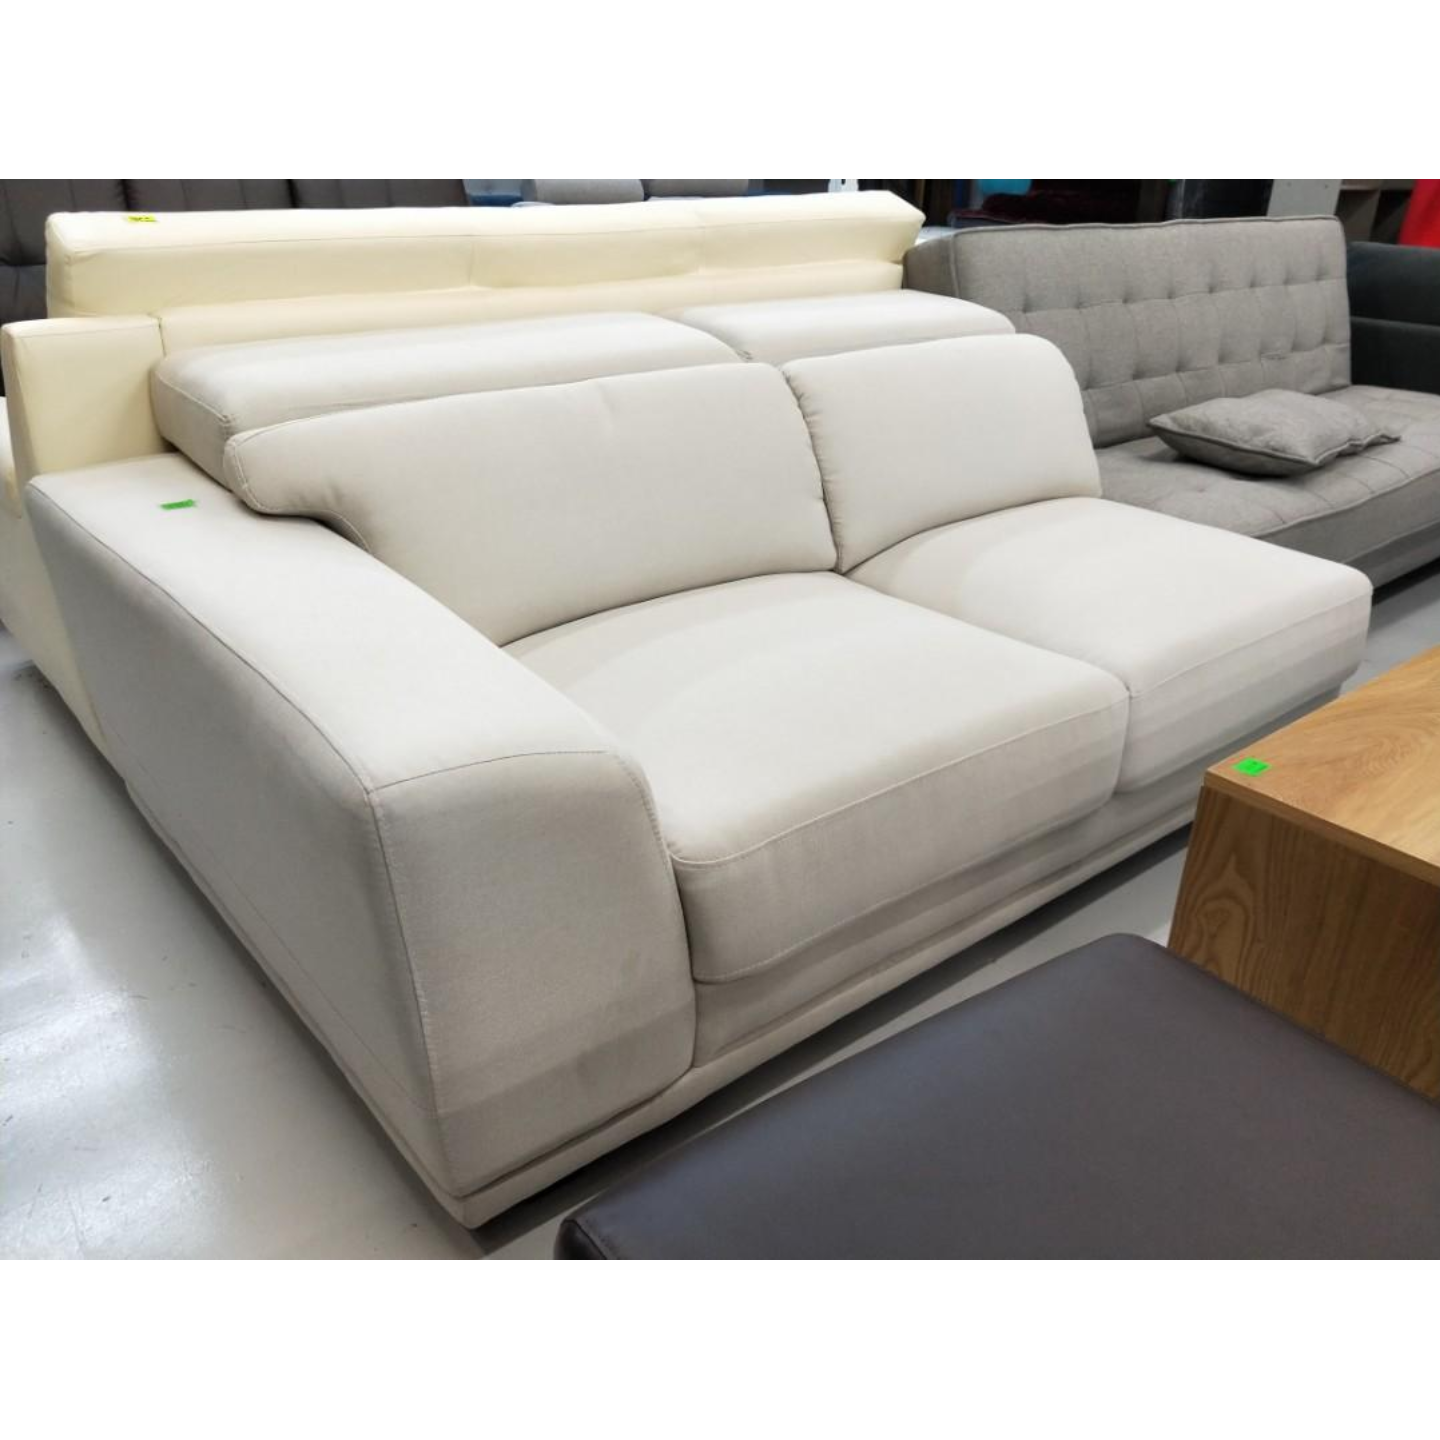 BOSJKA Corner Sofa in LIGHT BEIGE